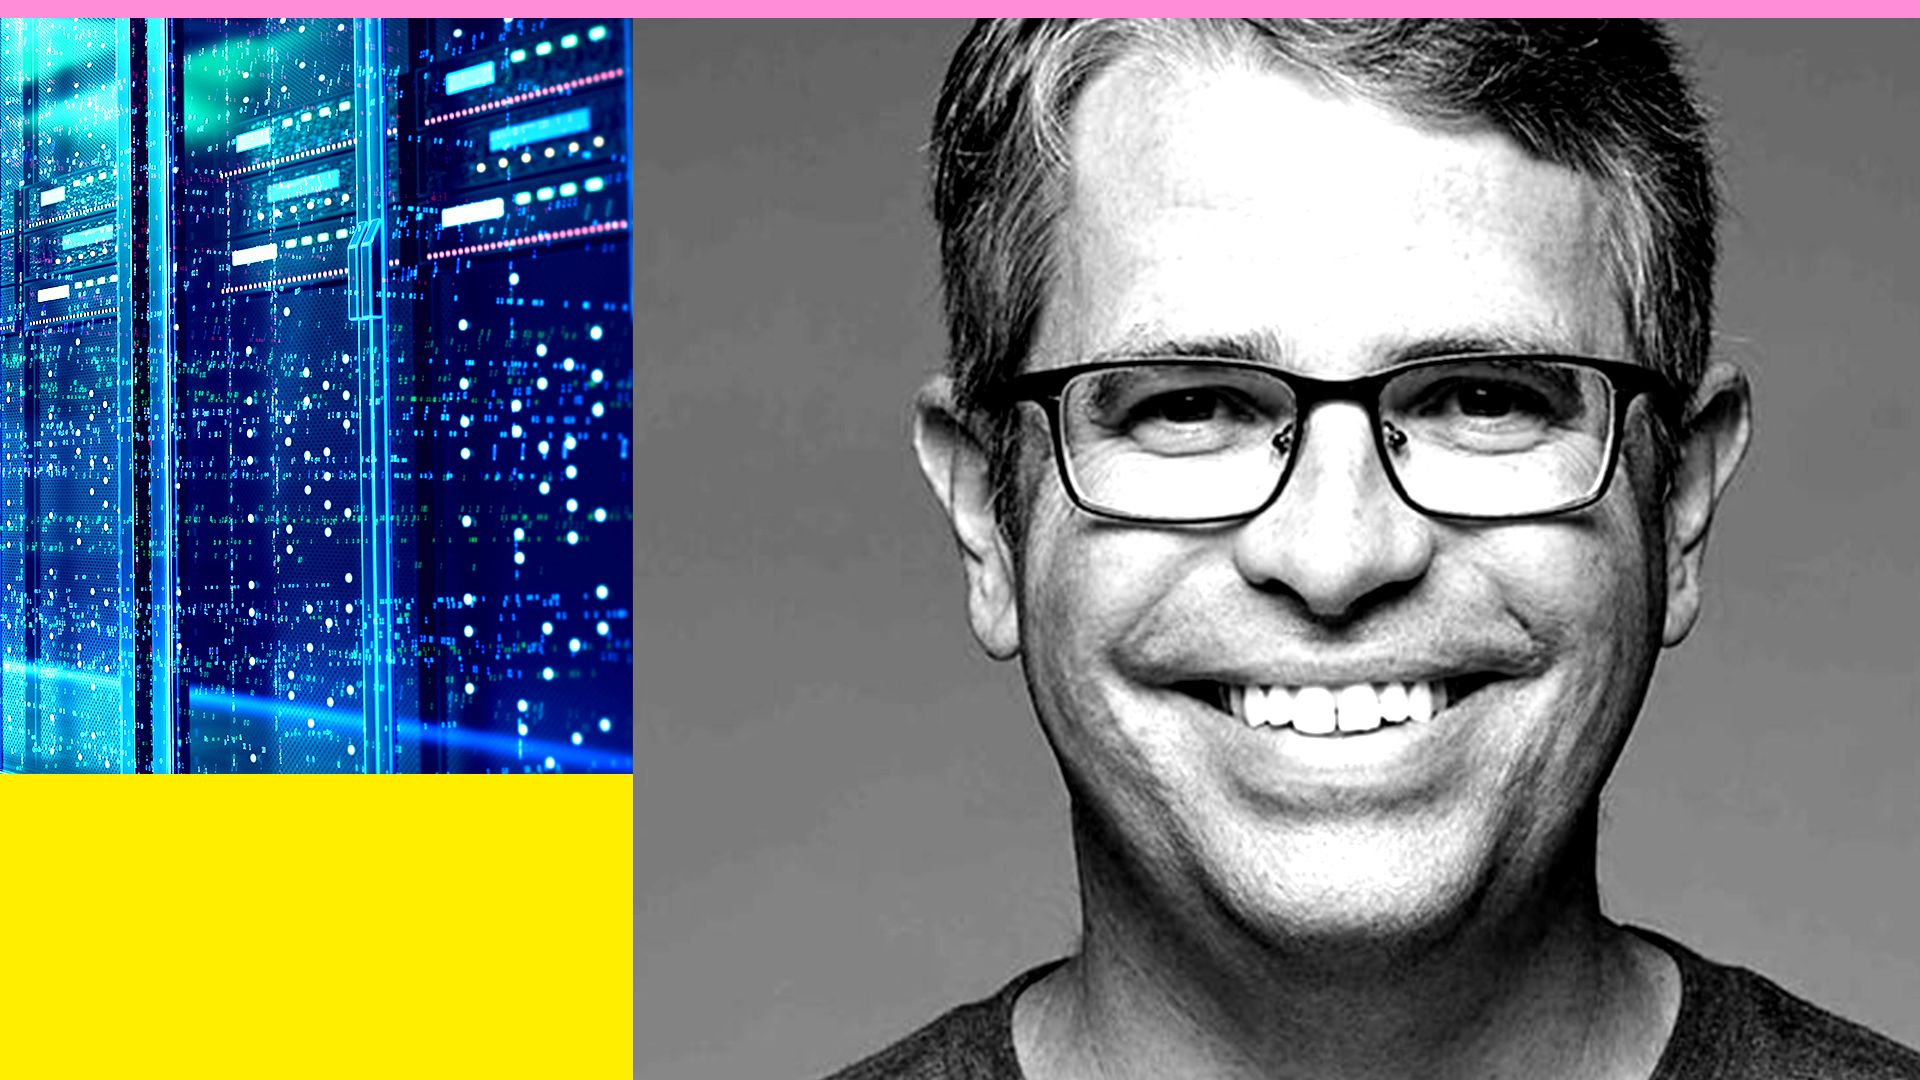 A photo illustration of US Digital Service head Matt Cutts and an image of a mainframe